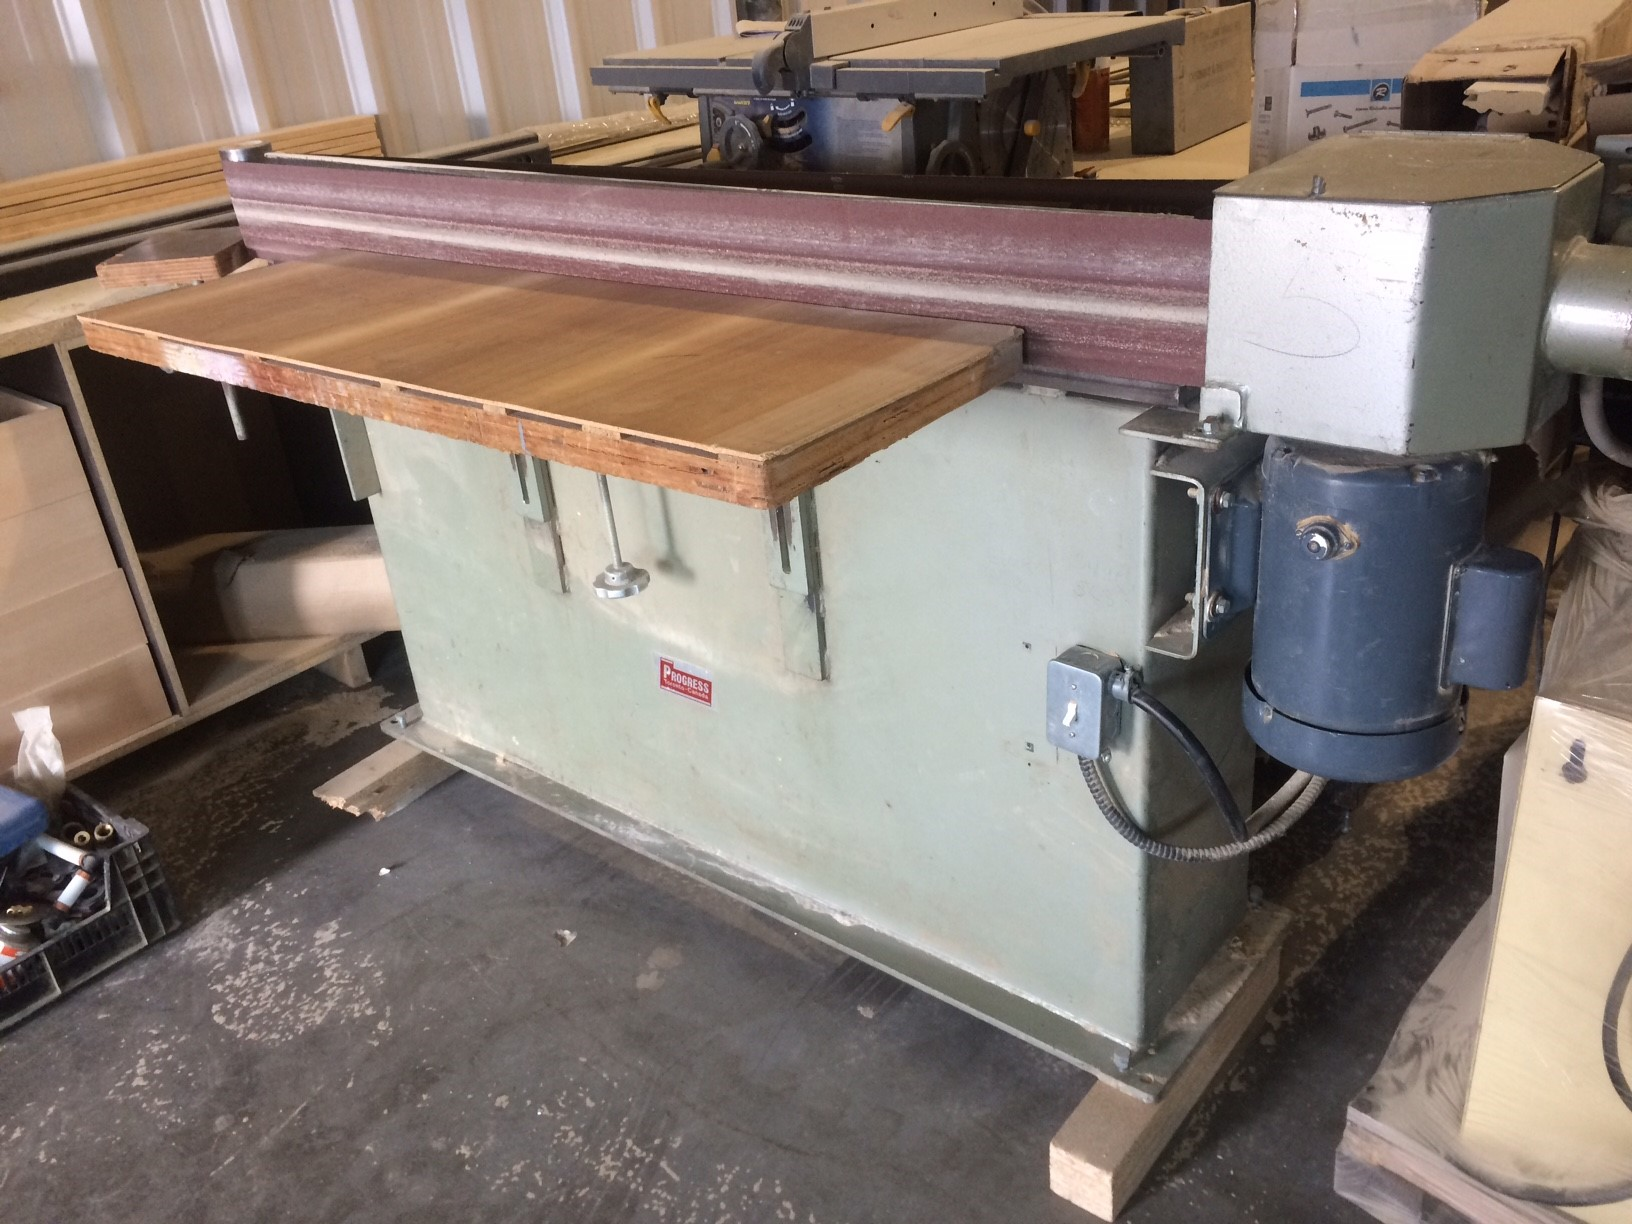 Progress PMC 152 edge sander,